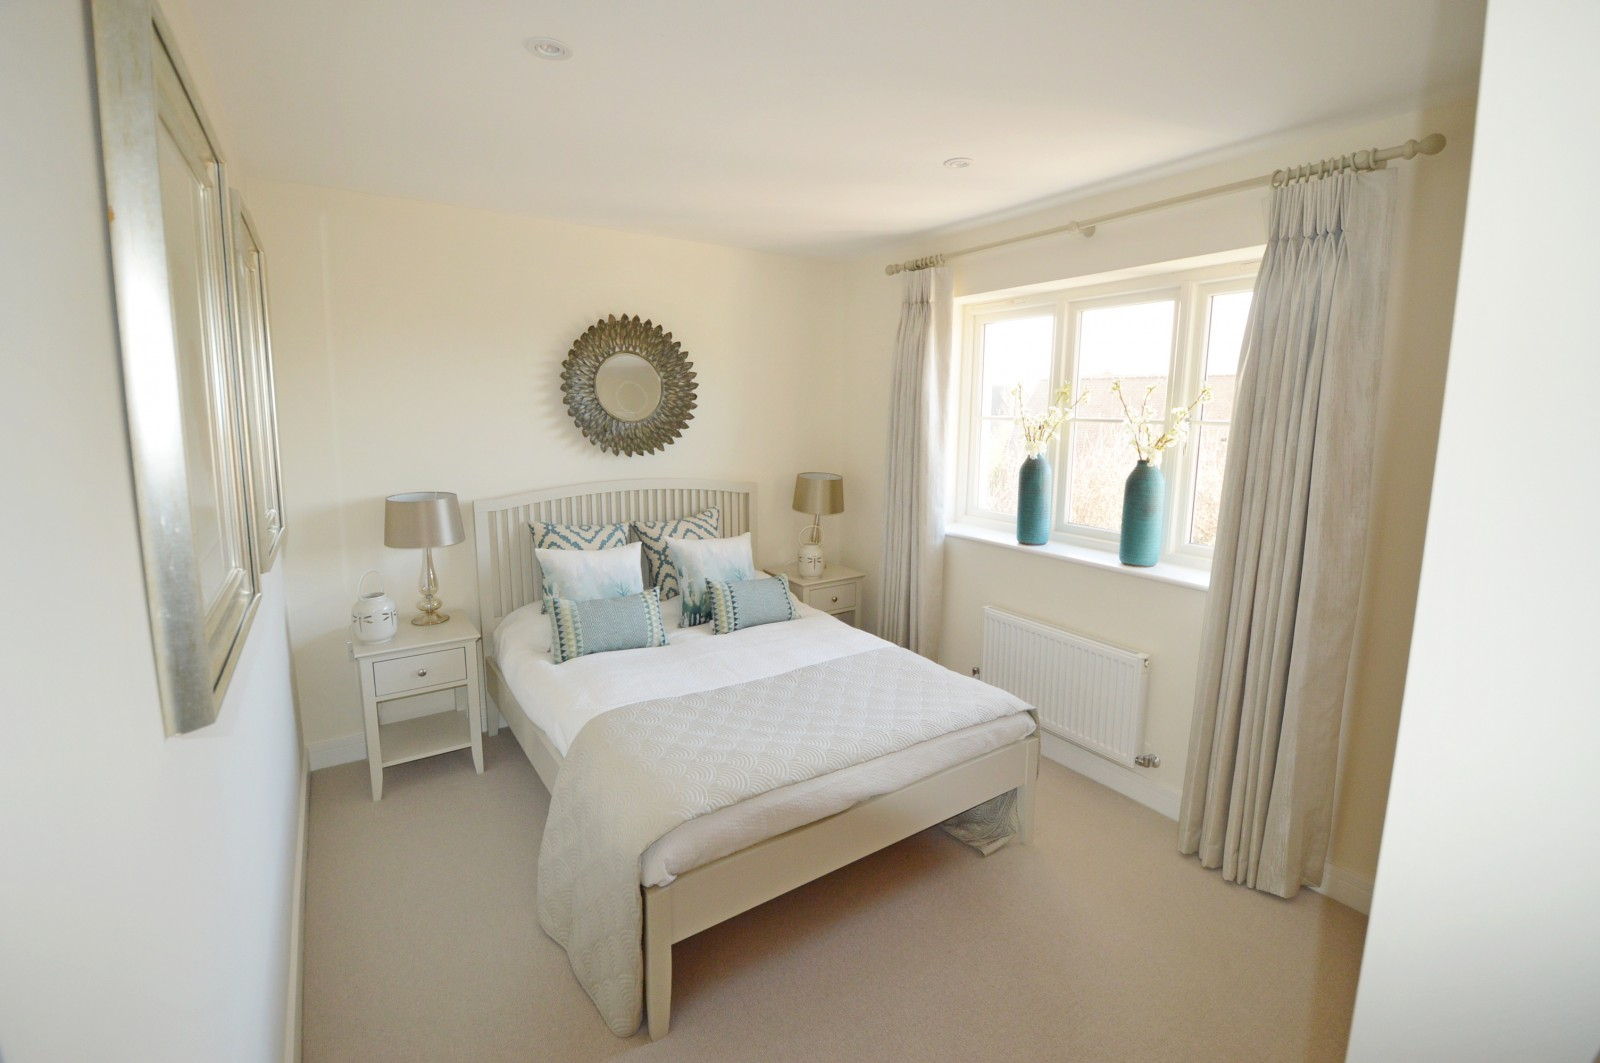 Bedroom 2 Property to let in Ropley